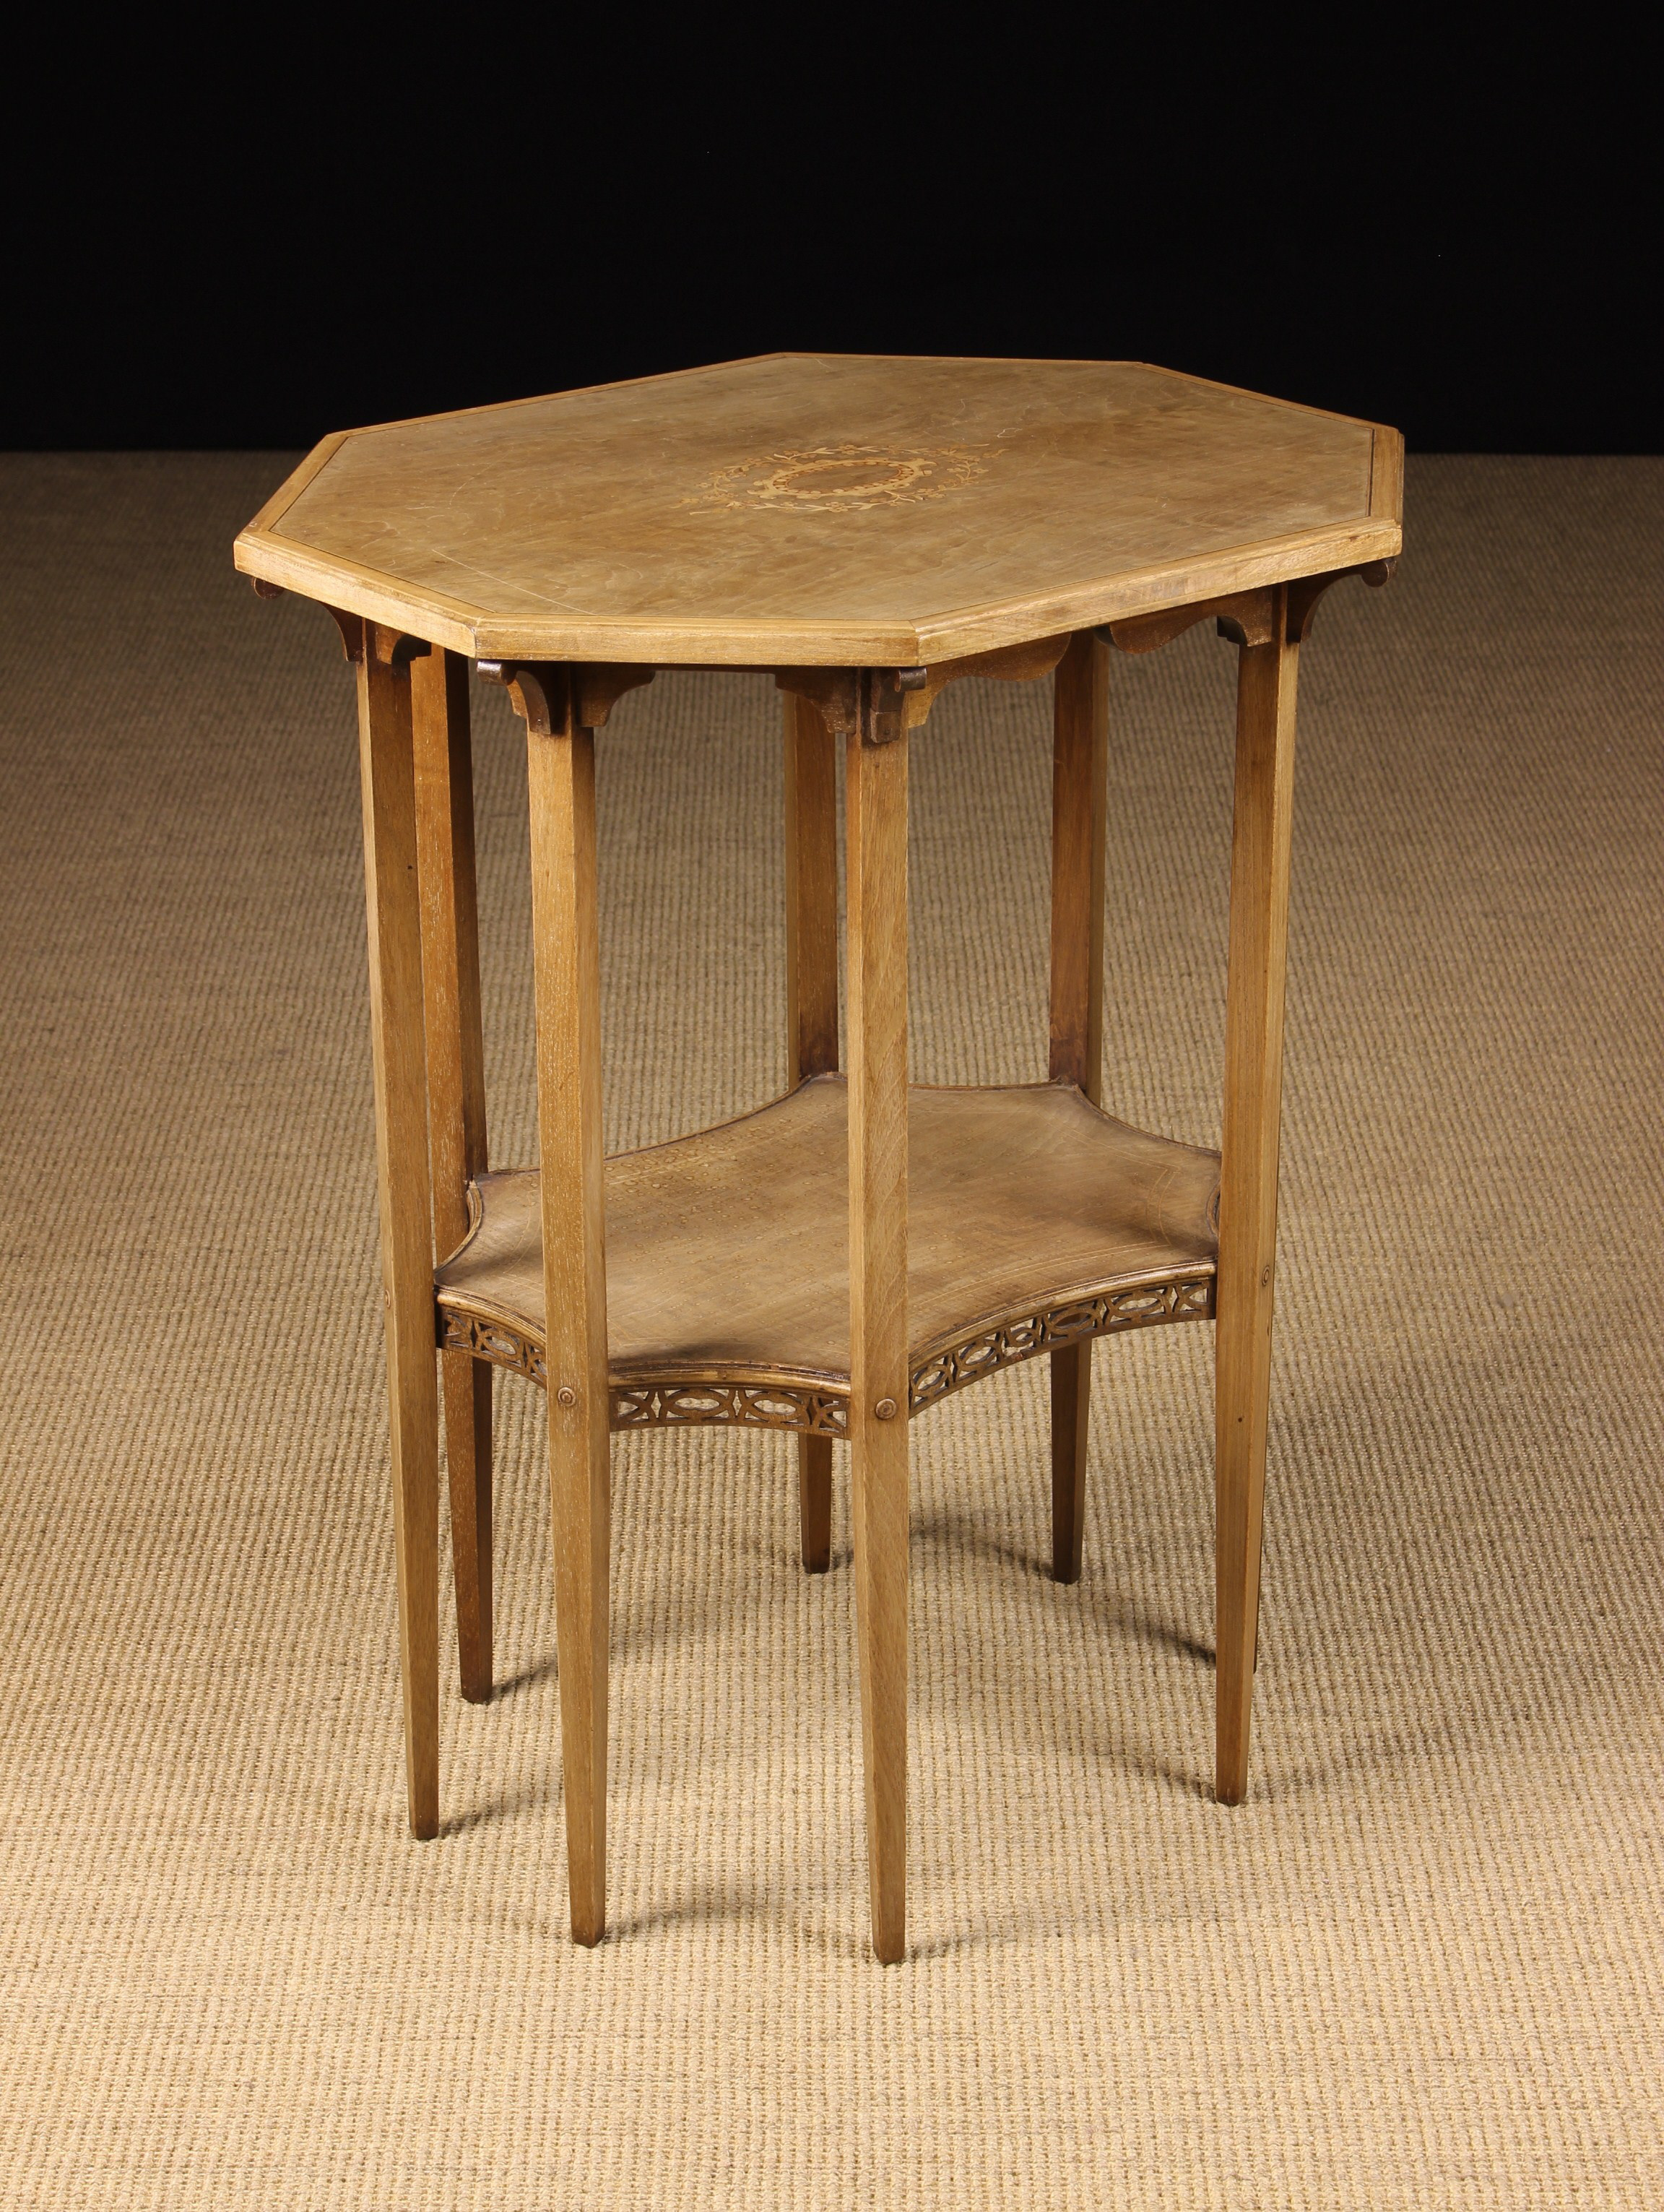 An Edwardian Style Two Tier Occasional Table.